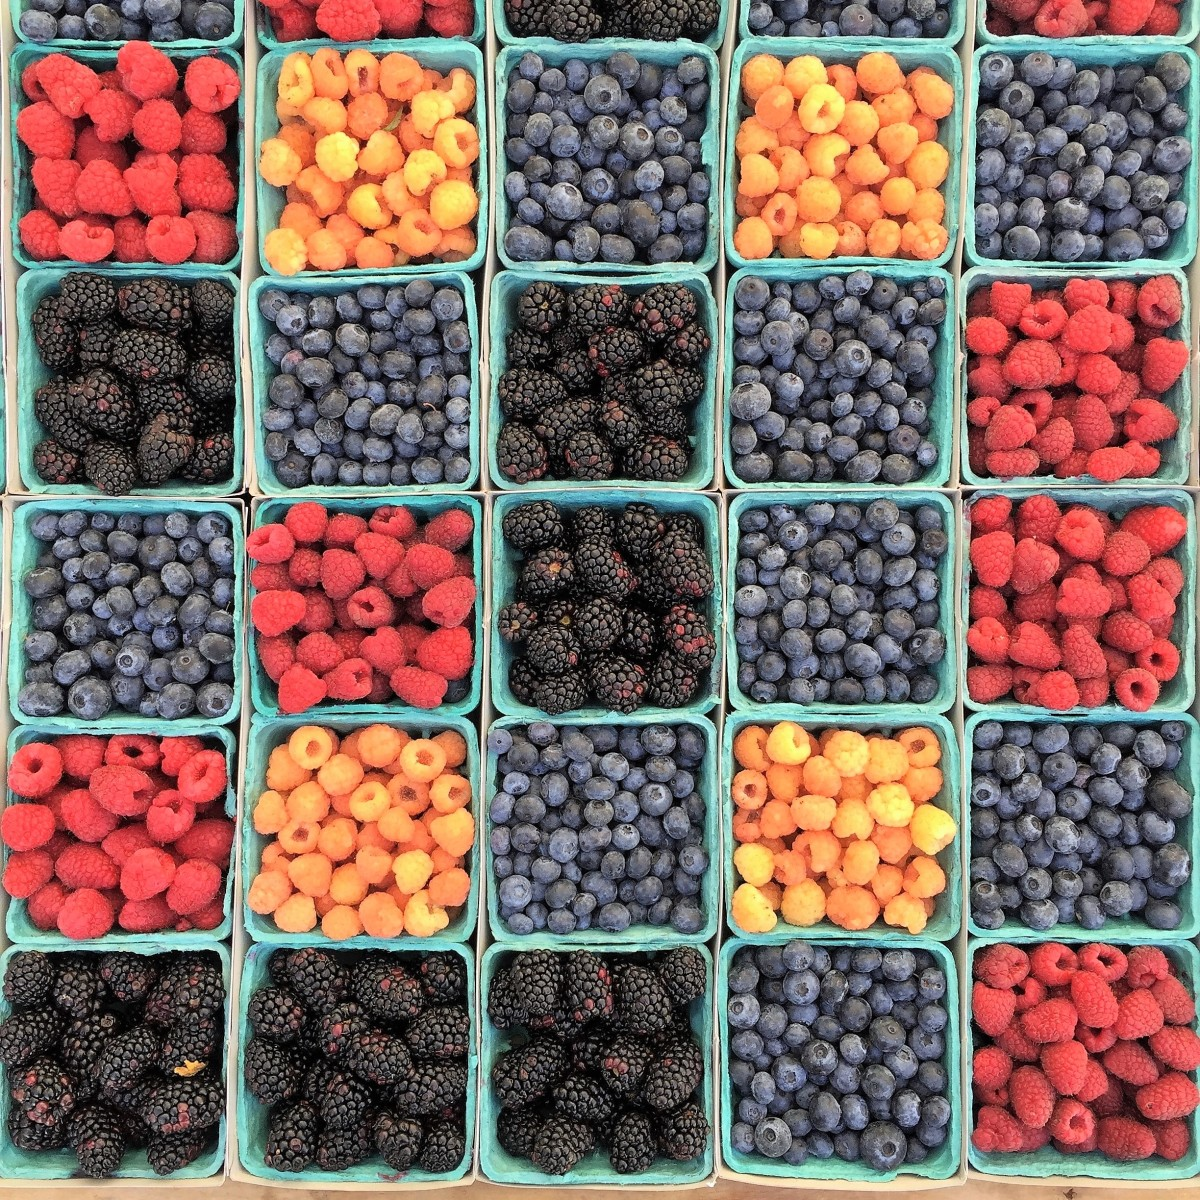 Raw berries are rich in vitamin C, which may help asthma.